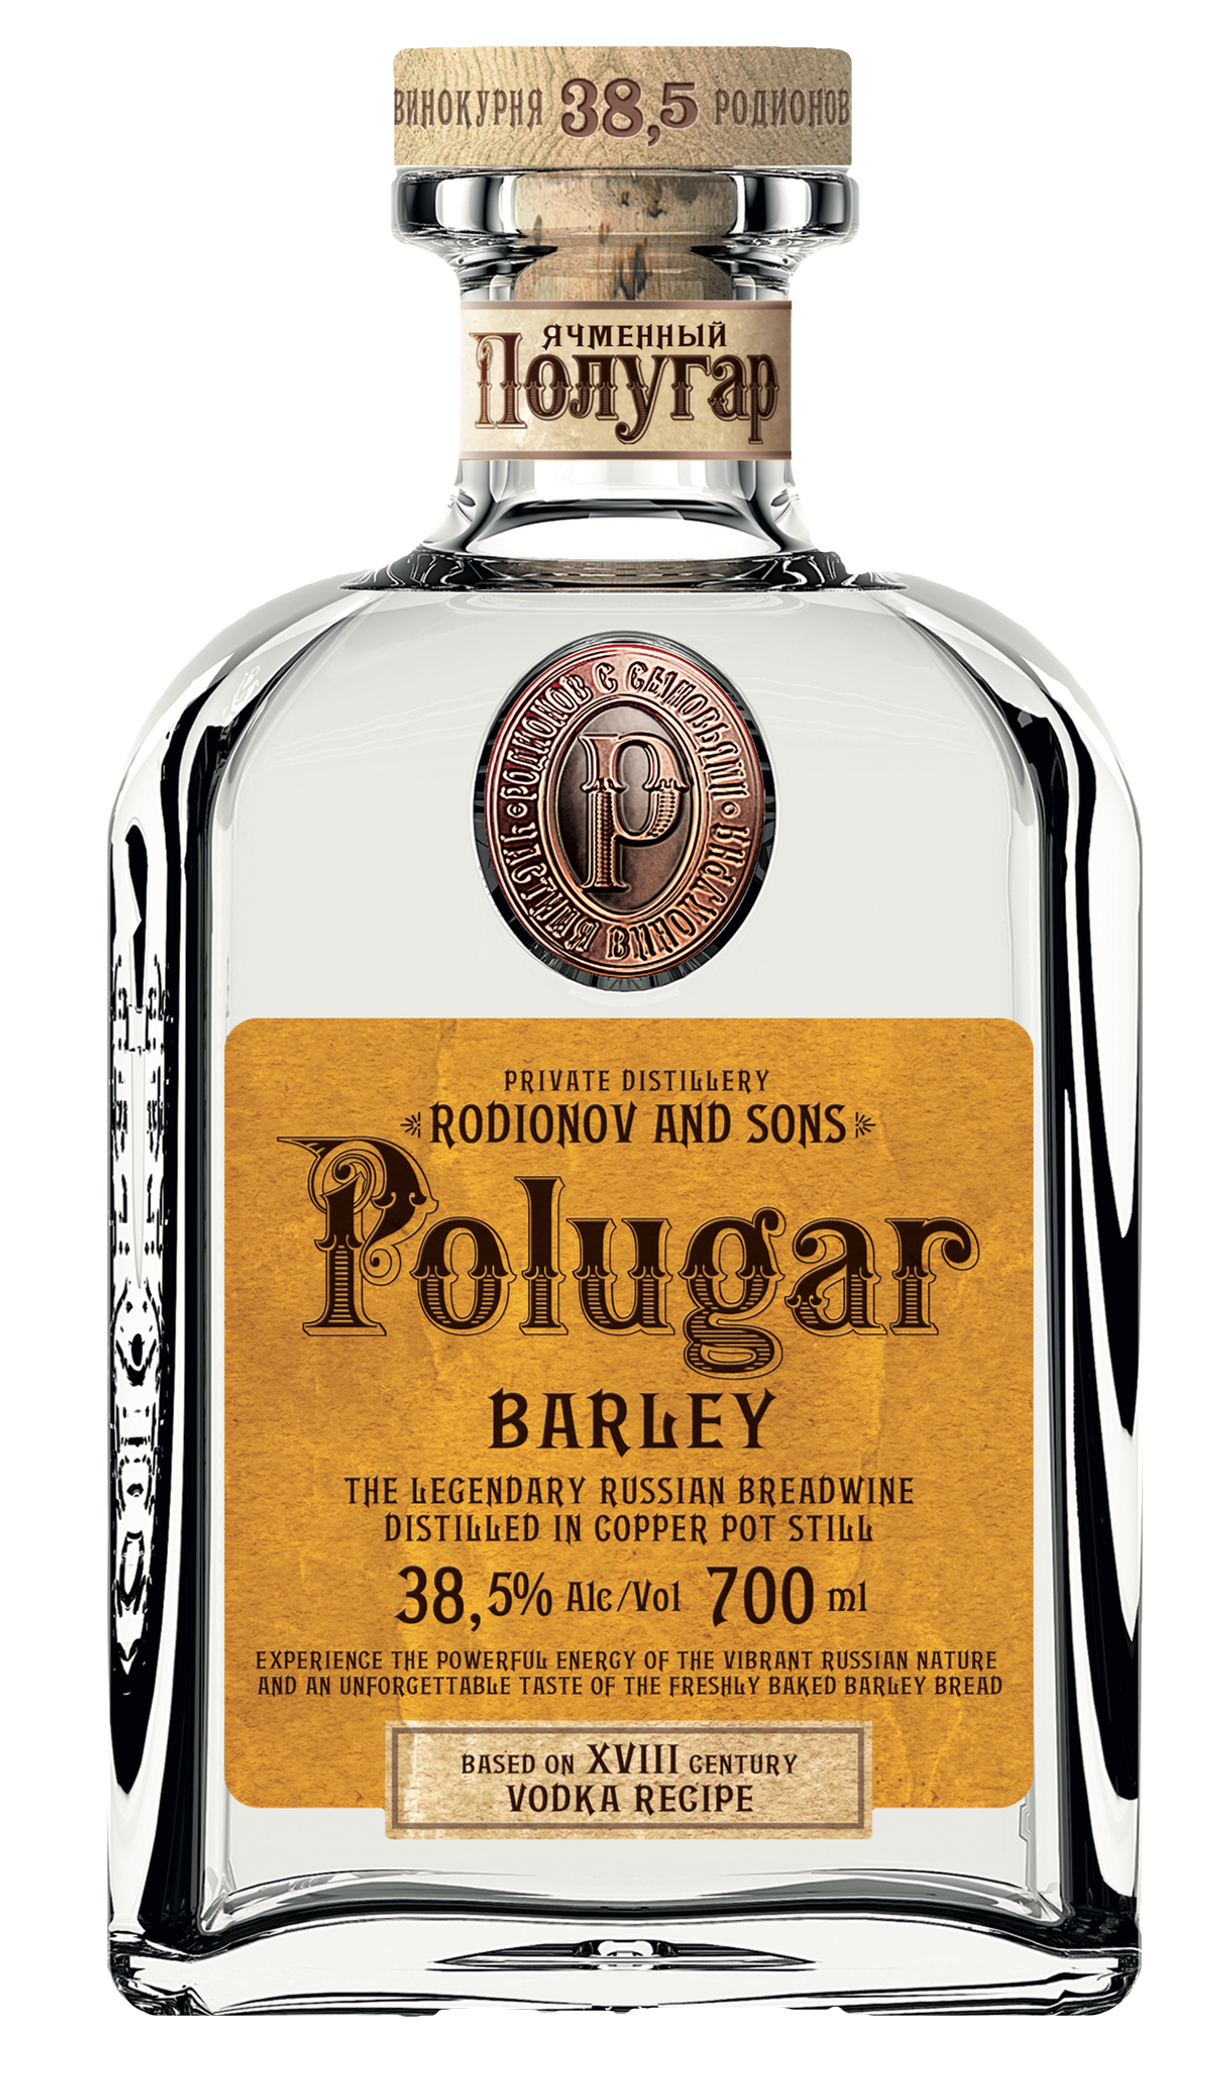 Polugar - Father of vodka, brother of whisky.